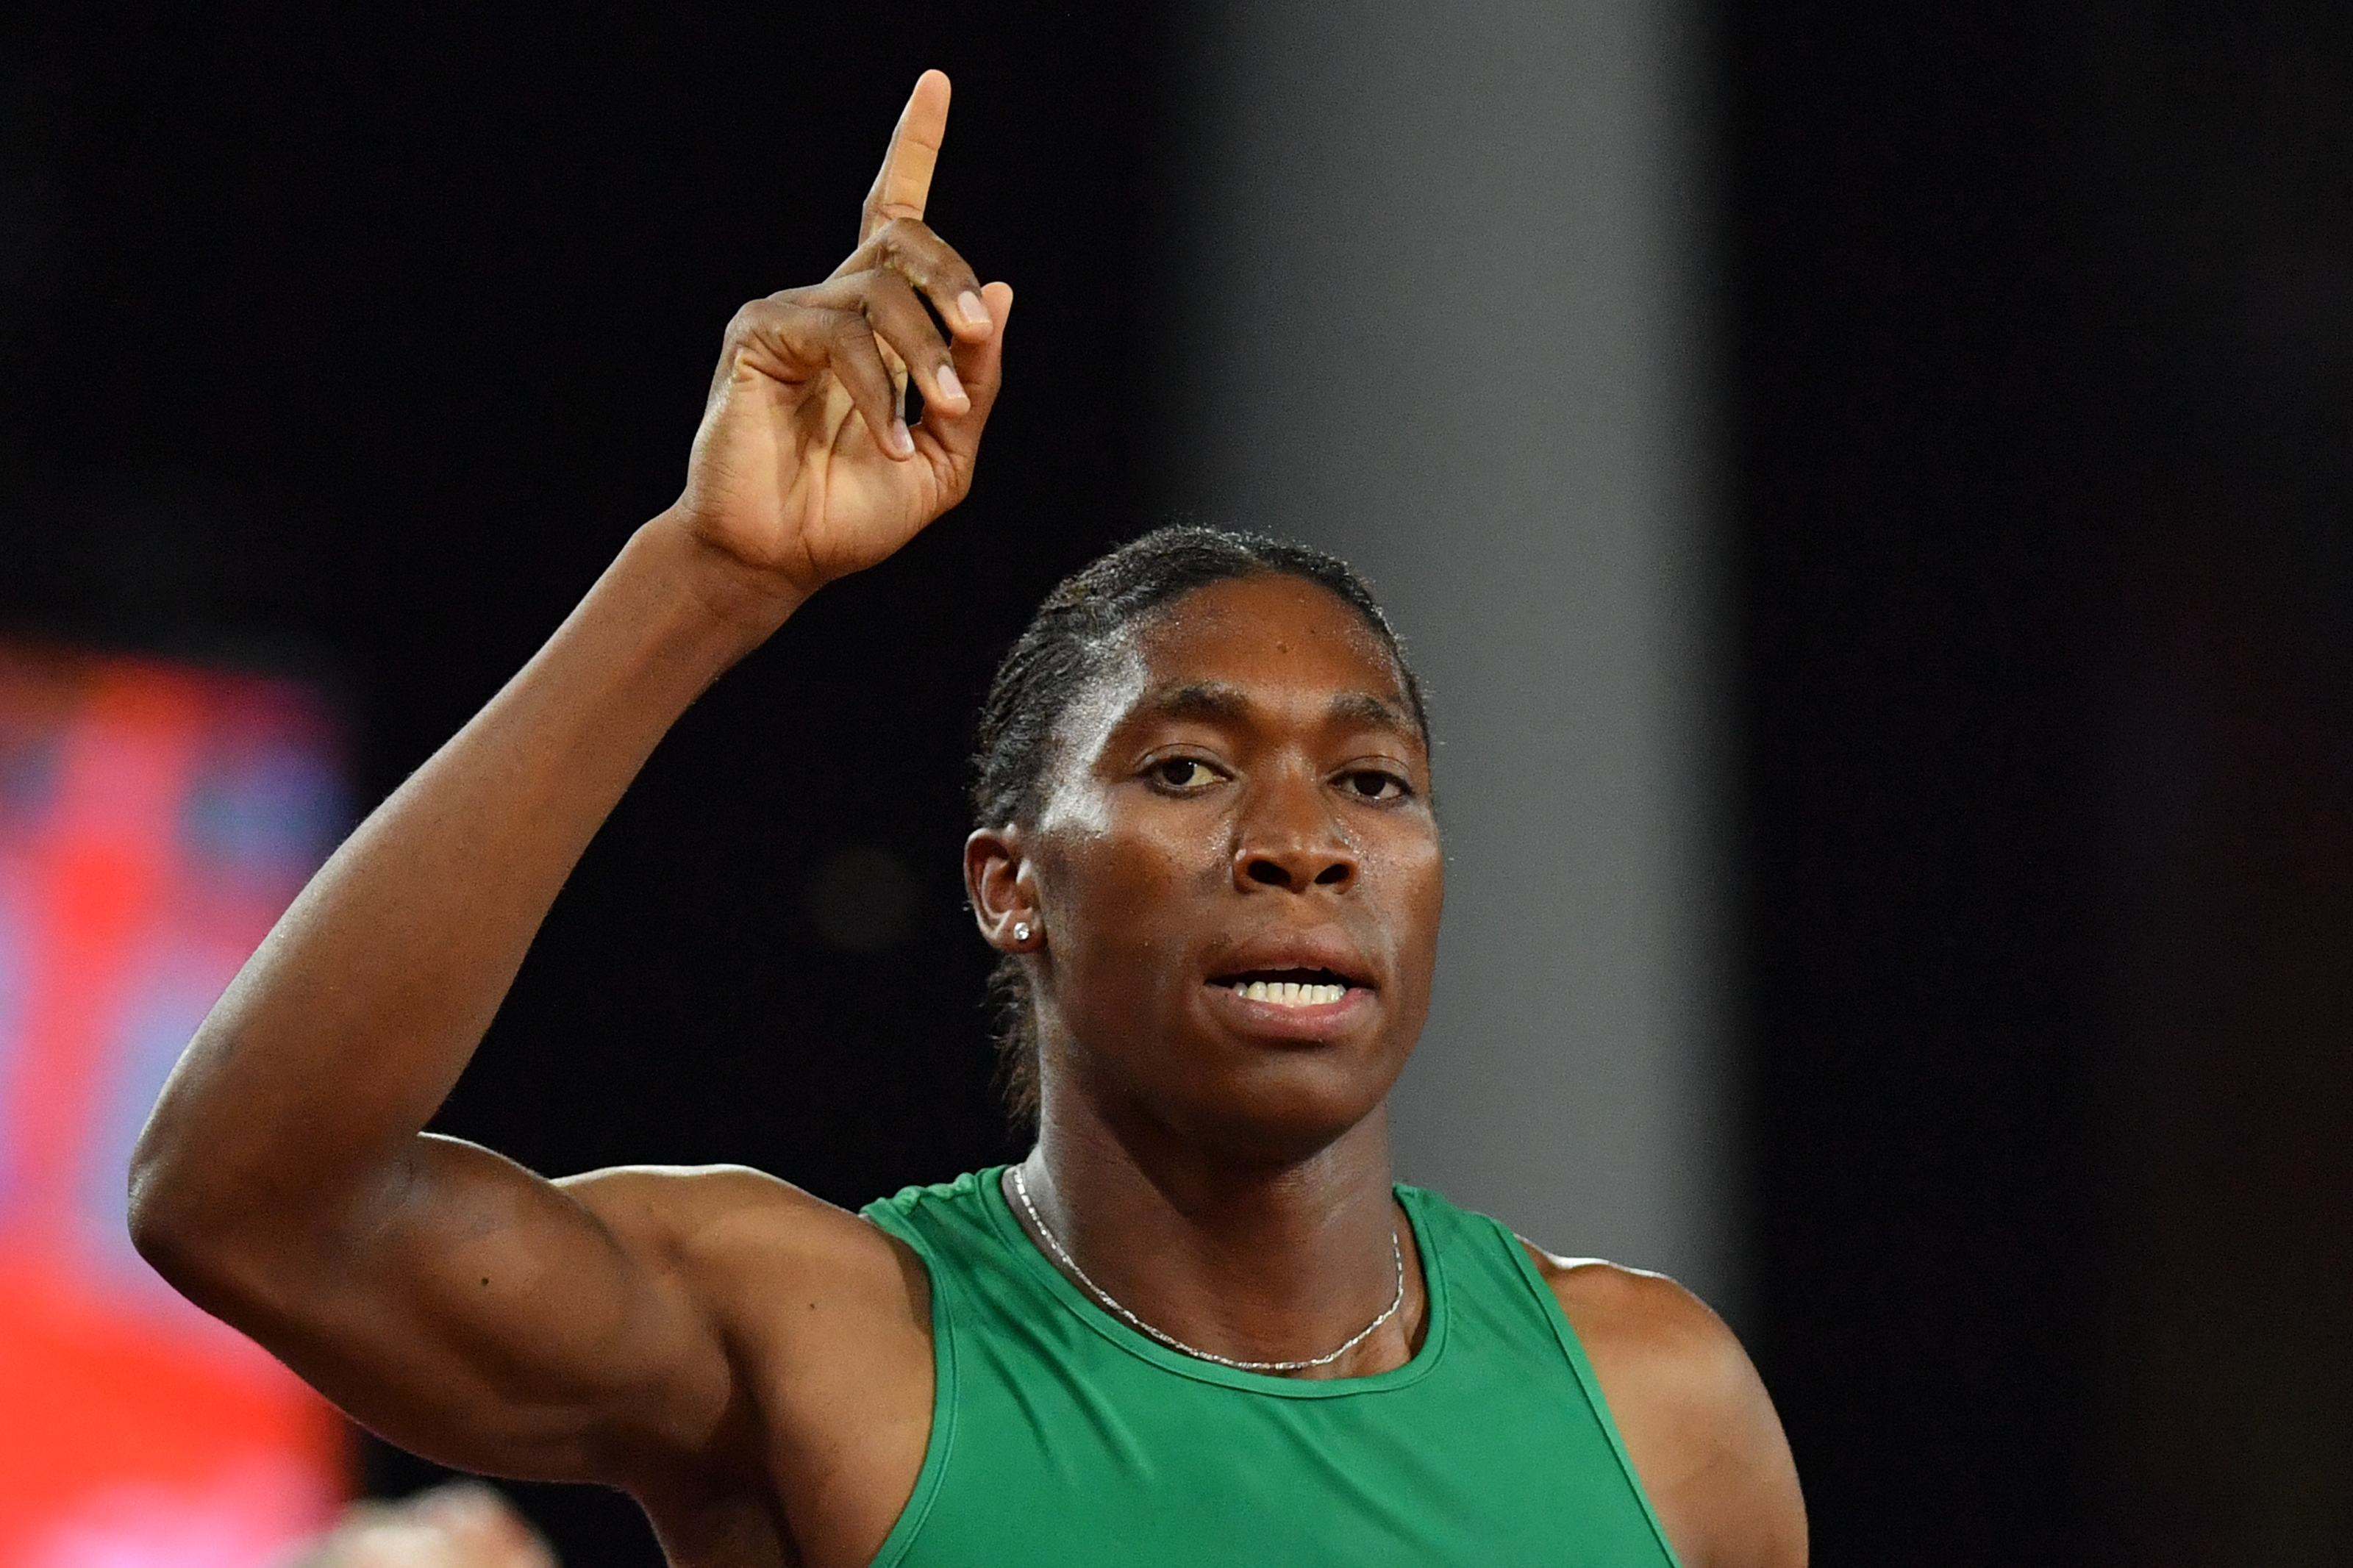 File: Double Olympic champion Caster Semenya won her last 800 metres race on Friday before the introduction of controversial rules limiting testosterone levels in female athletes.